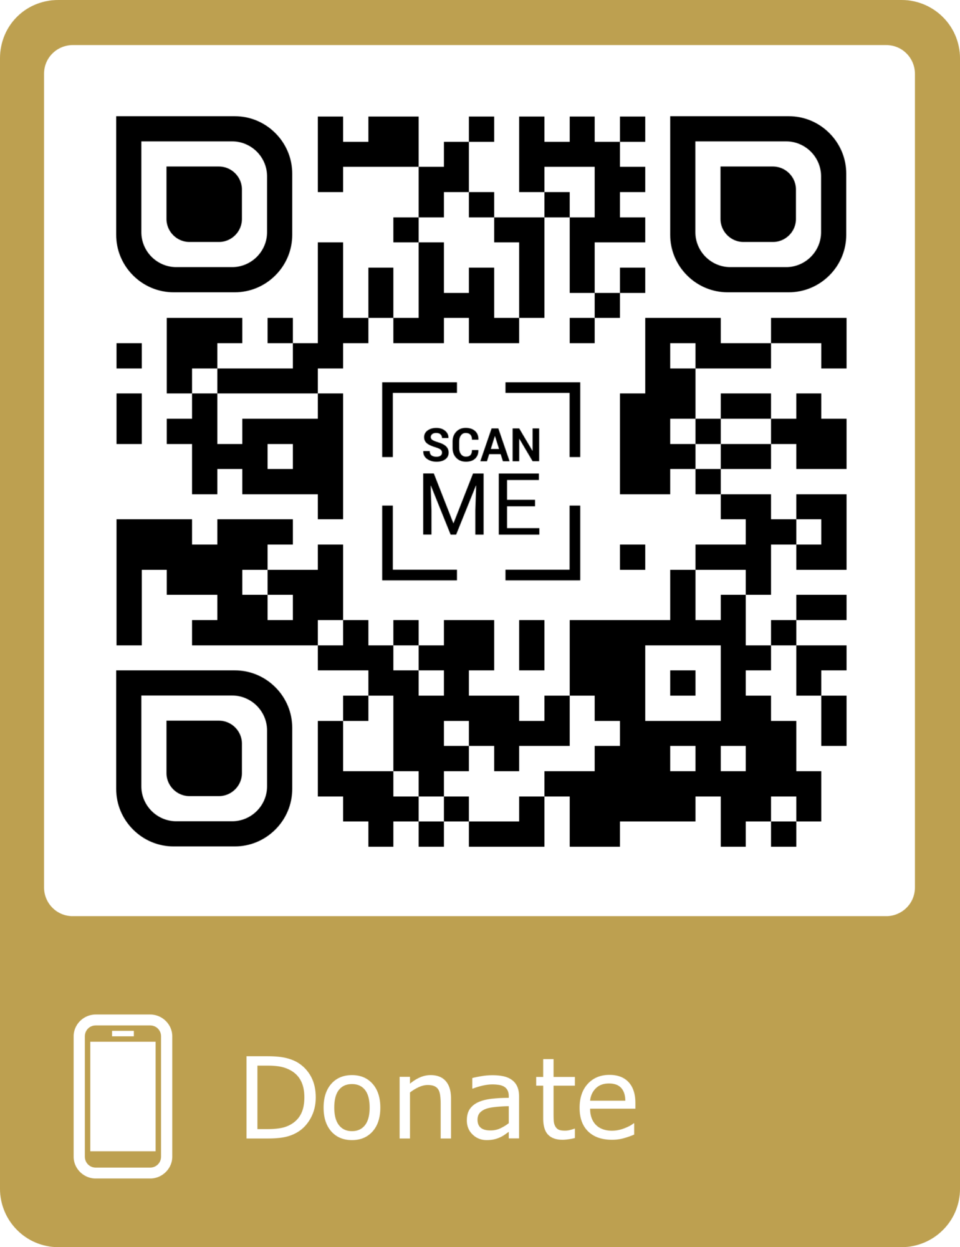 QR code to donate to us at Just Giving